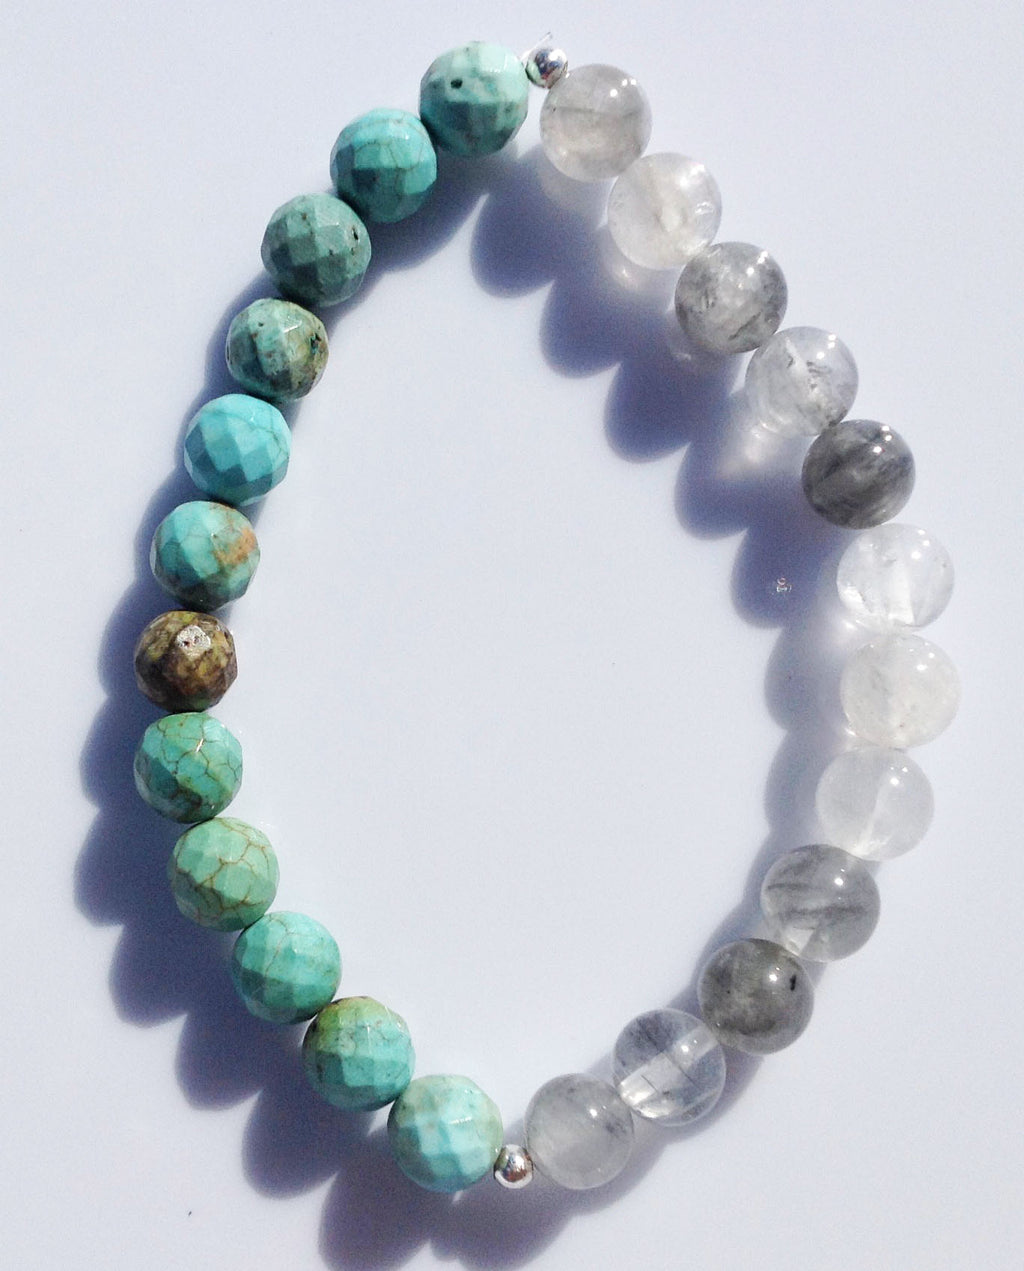 Balance Collection Rutilated Quartz Crystal & Faceted Turquoise Yoga Meditation Wrist Mala Bracelet Throat Chakra Focus Healing Energy Reiki